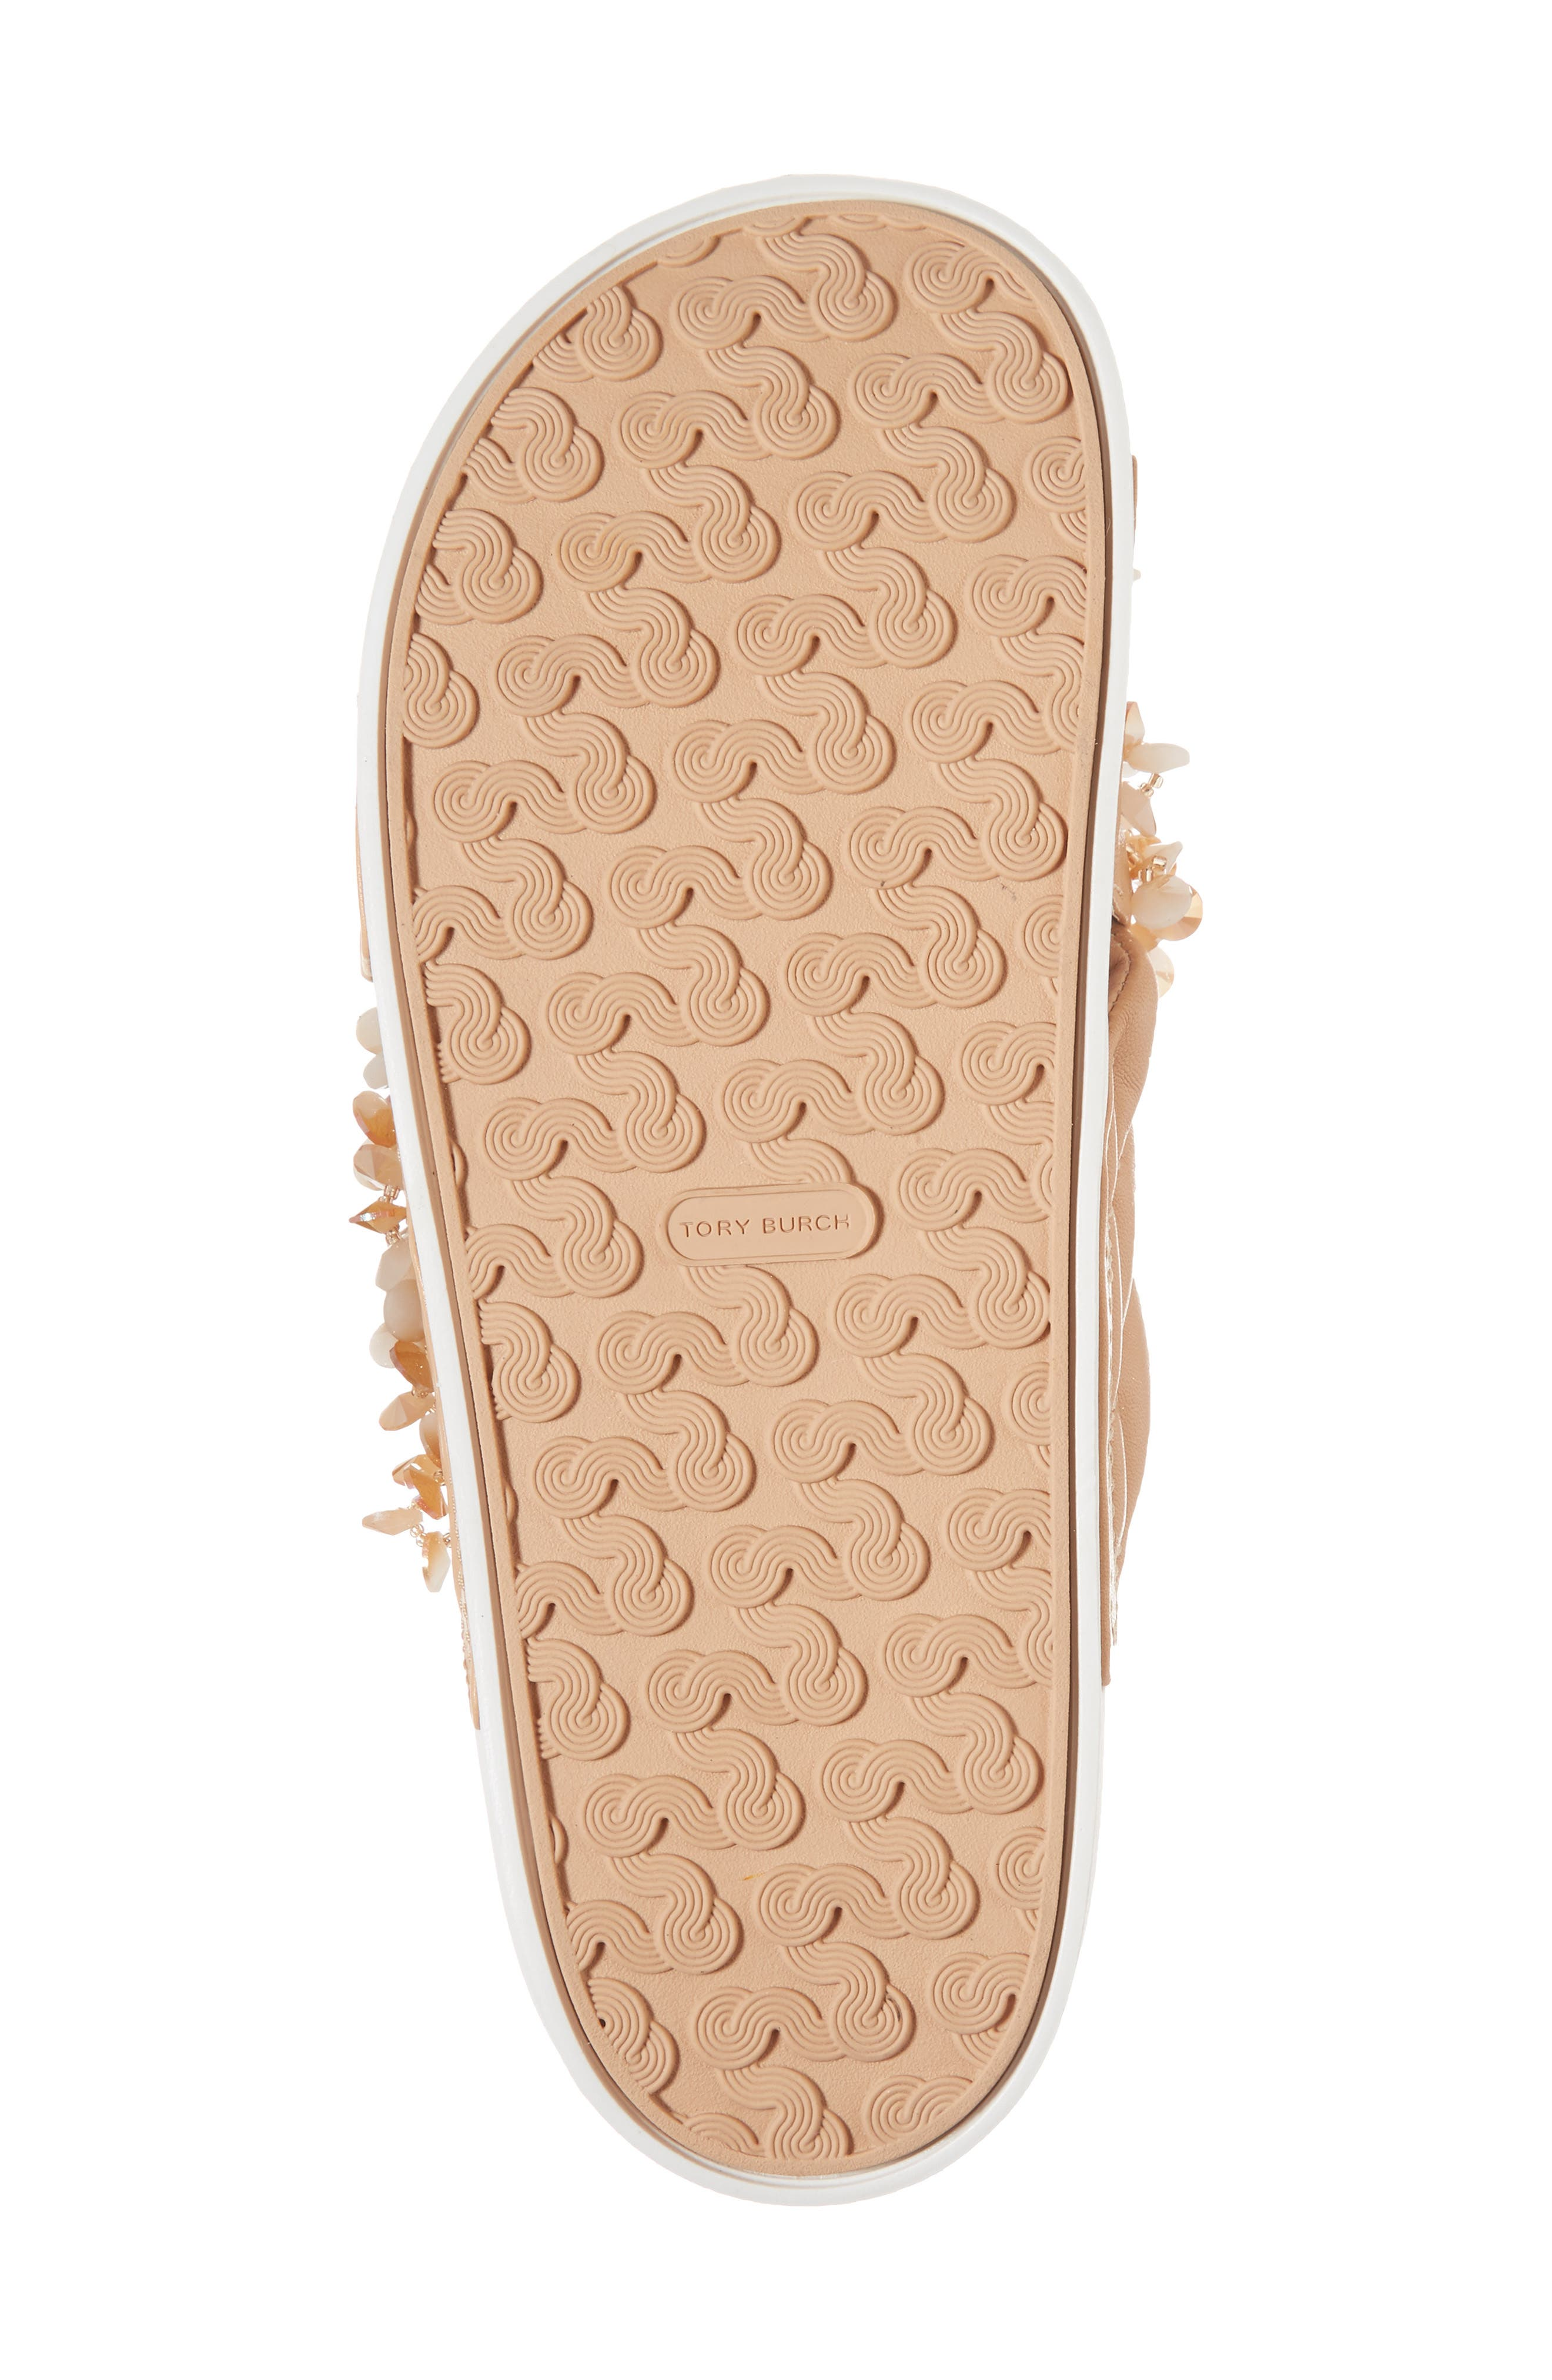 Logan Embellished Slide Sandal,                             Alternate thumbnail 6, color,                             Natural Vachetta/ Cassia